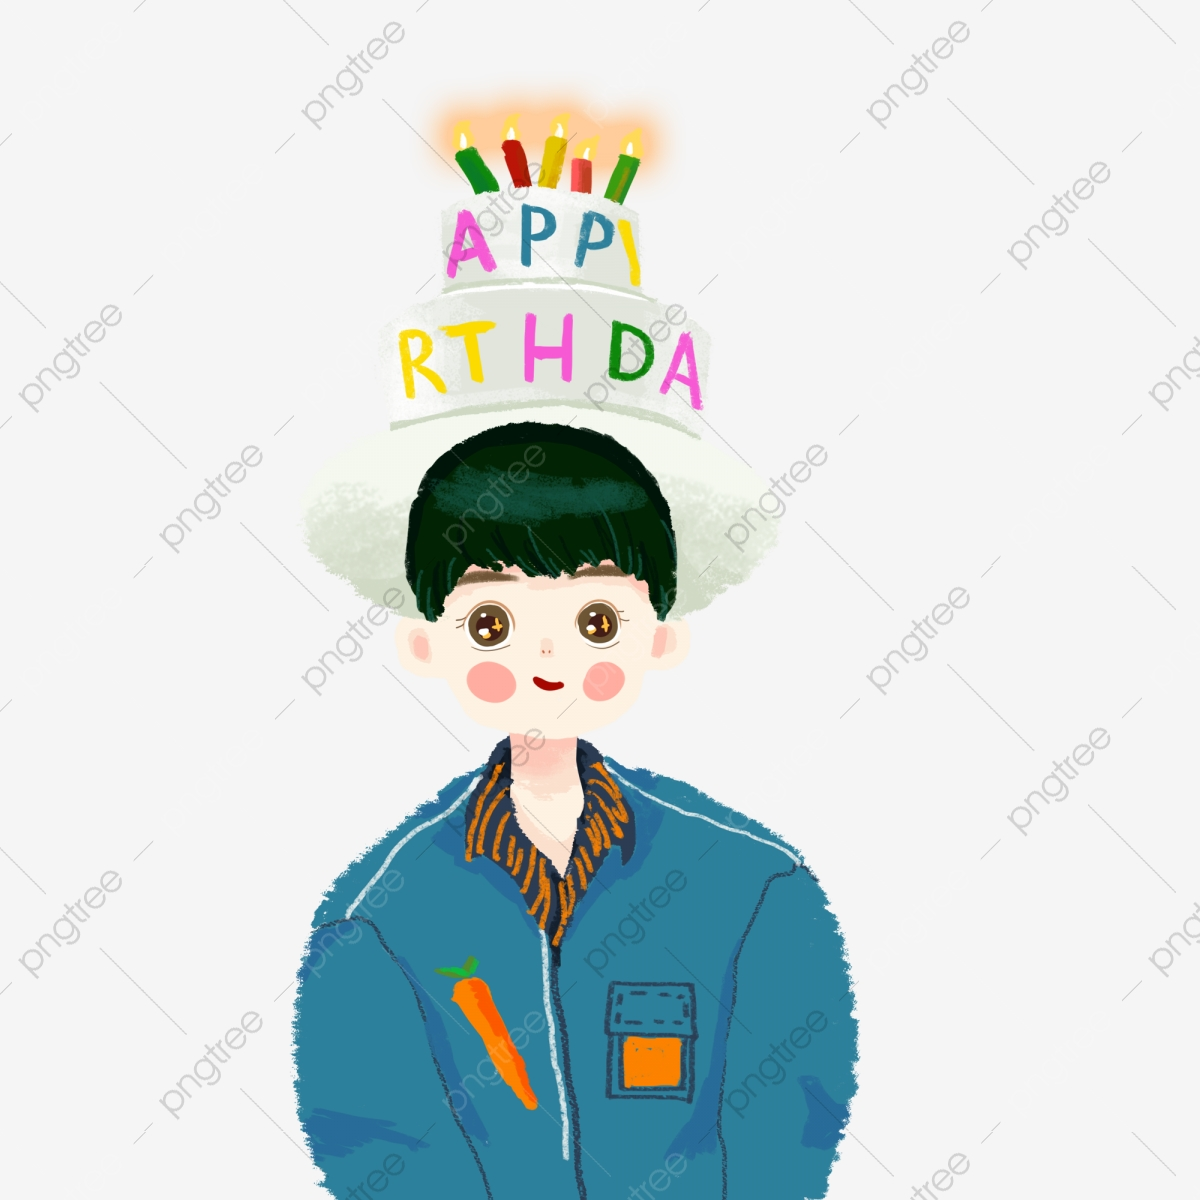 Stupendous Cute Little Boy Cute Boy Birthday Cake Png Transparent Clipart Birthday Cards Printable Nowaargucafe Filternl